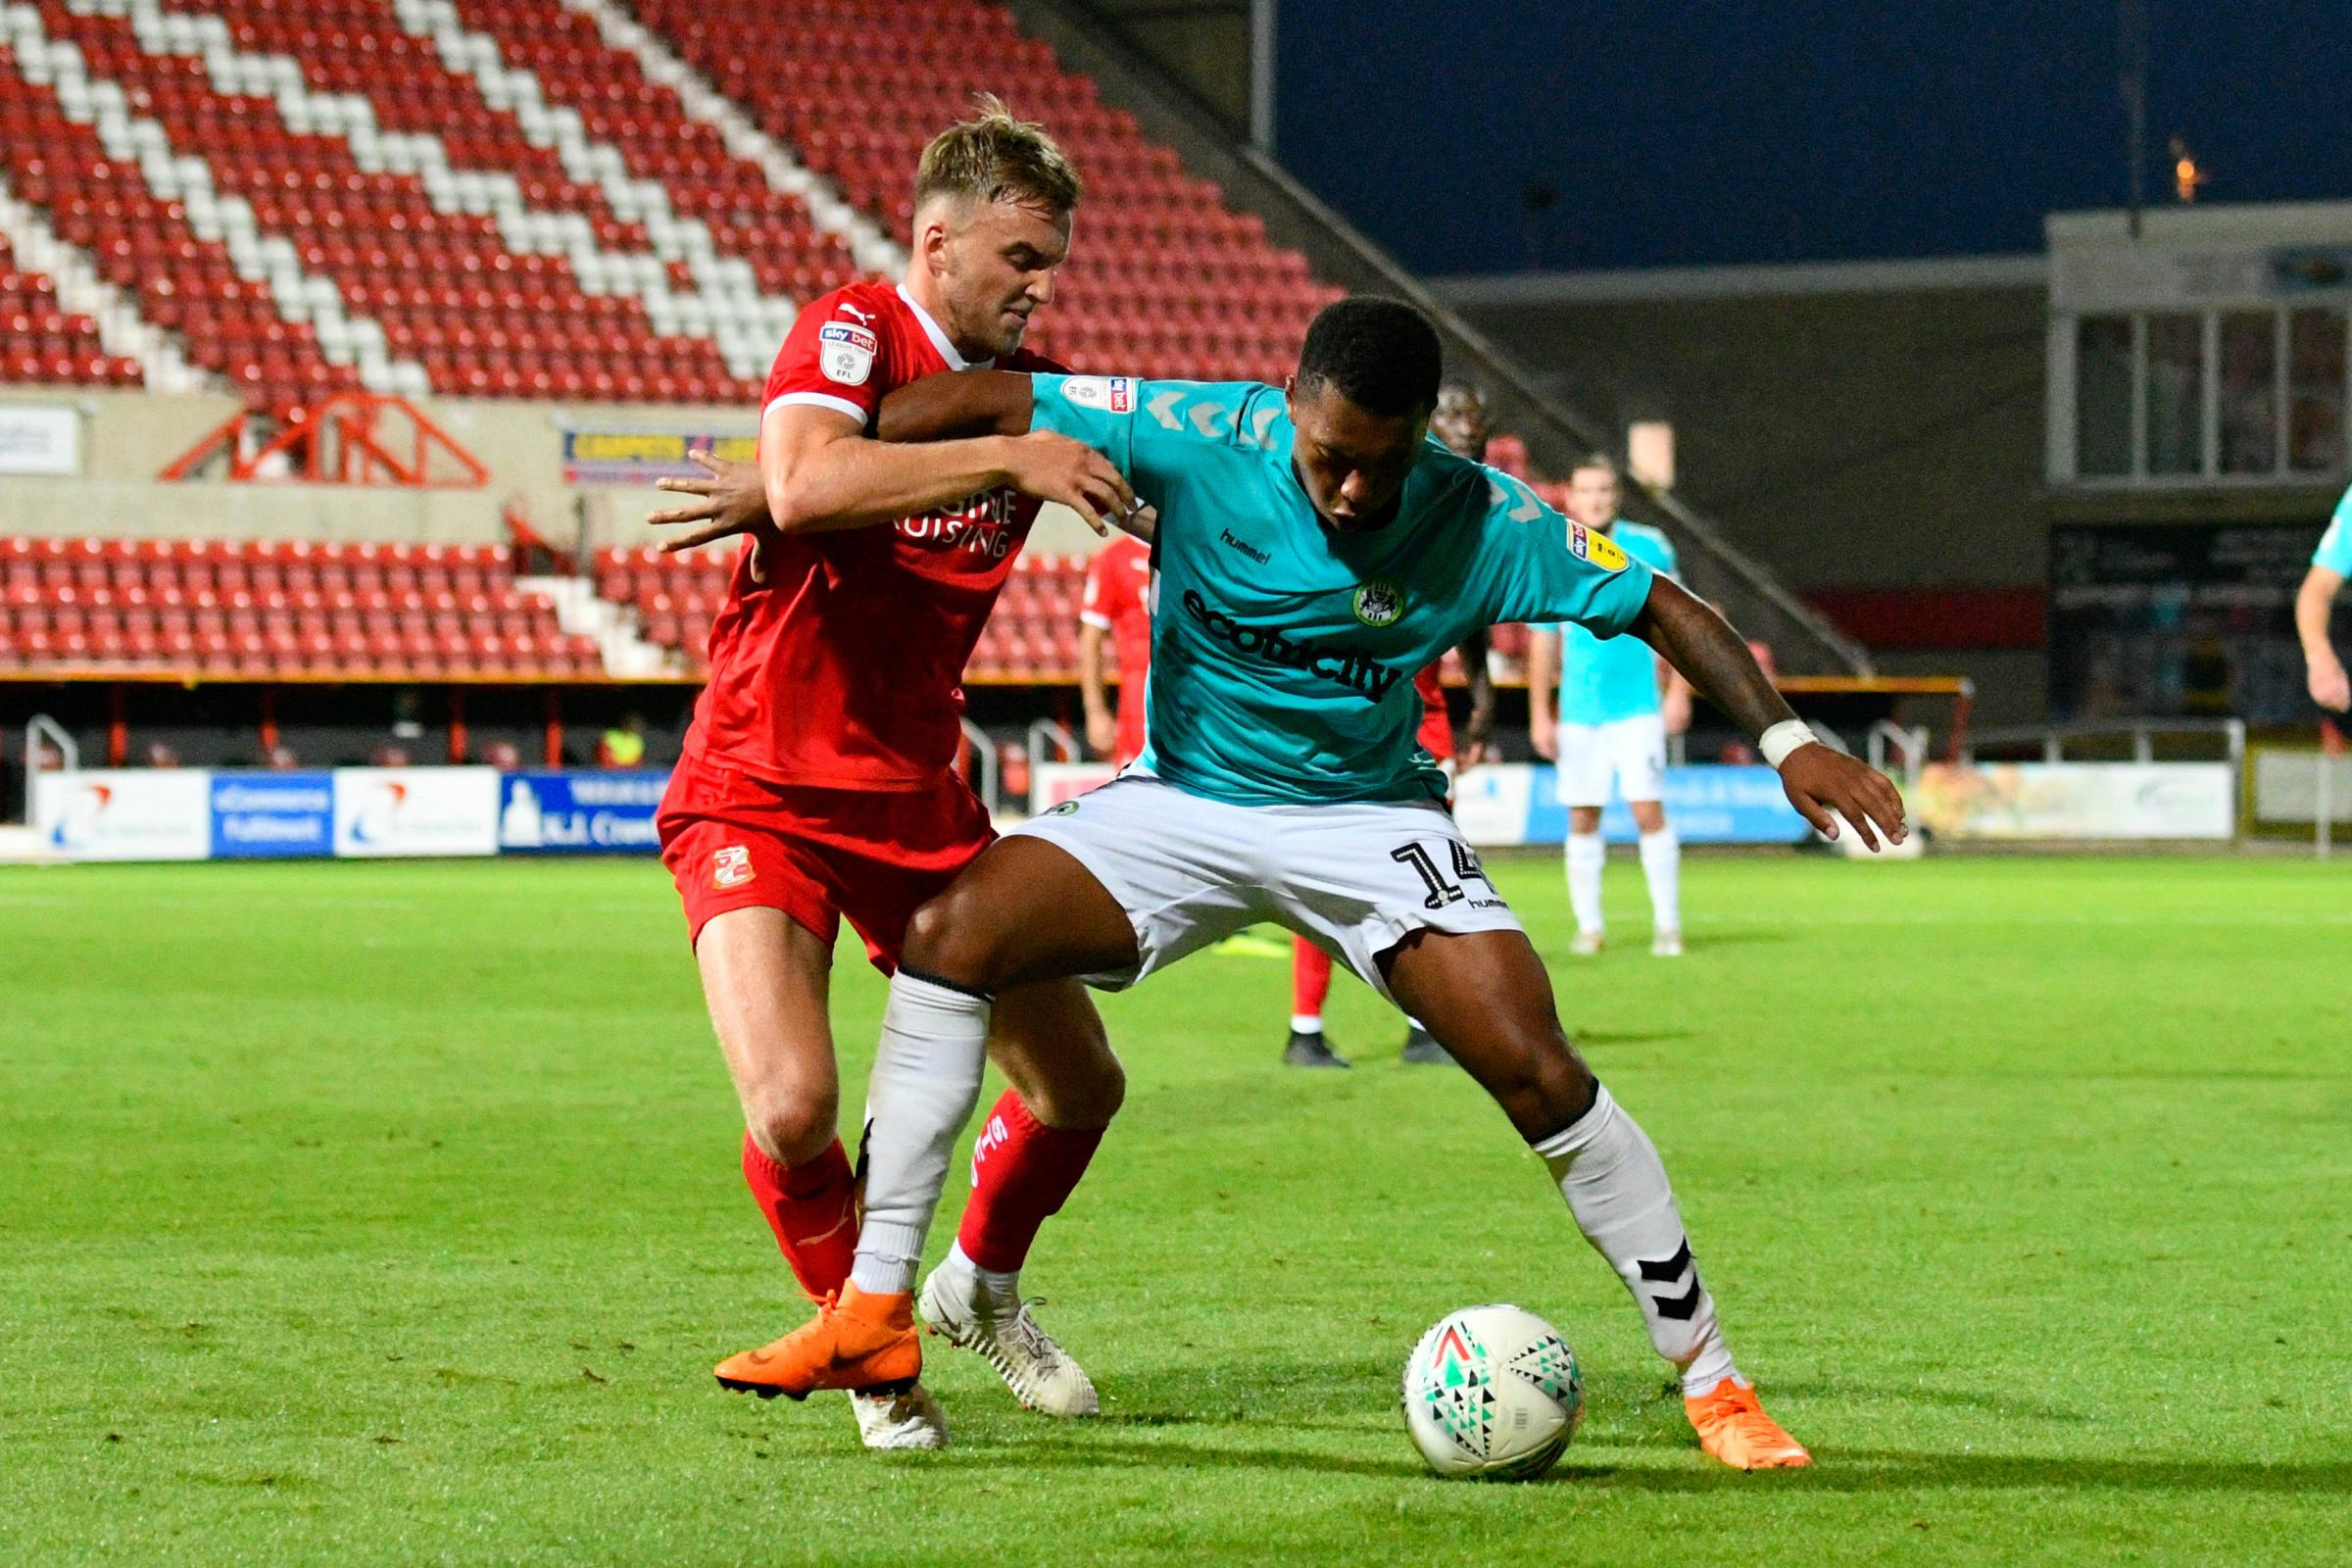 PSI_Swindon_Town_v_Forest_Green_Rovers_14th_August_2018_GH_1322